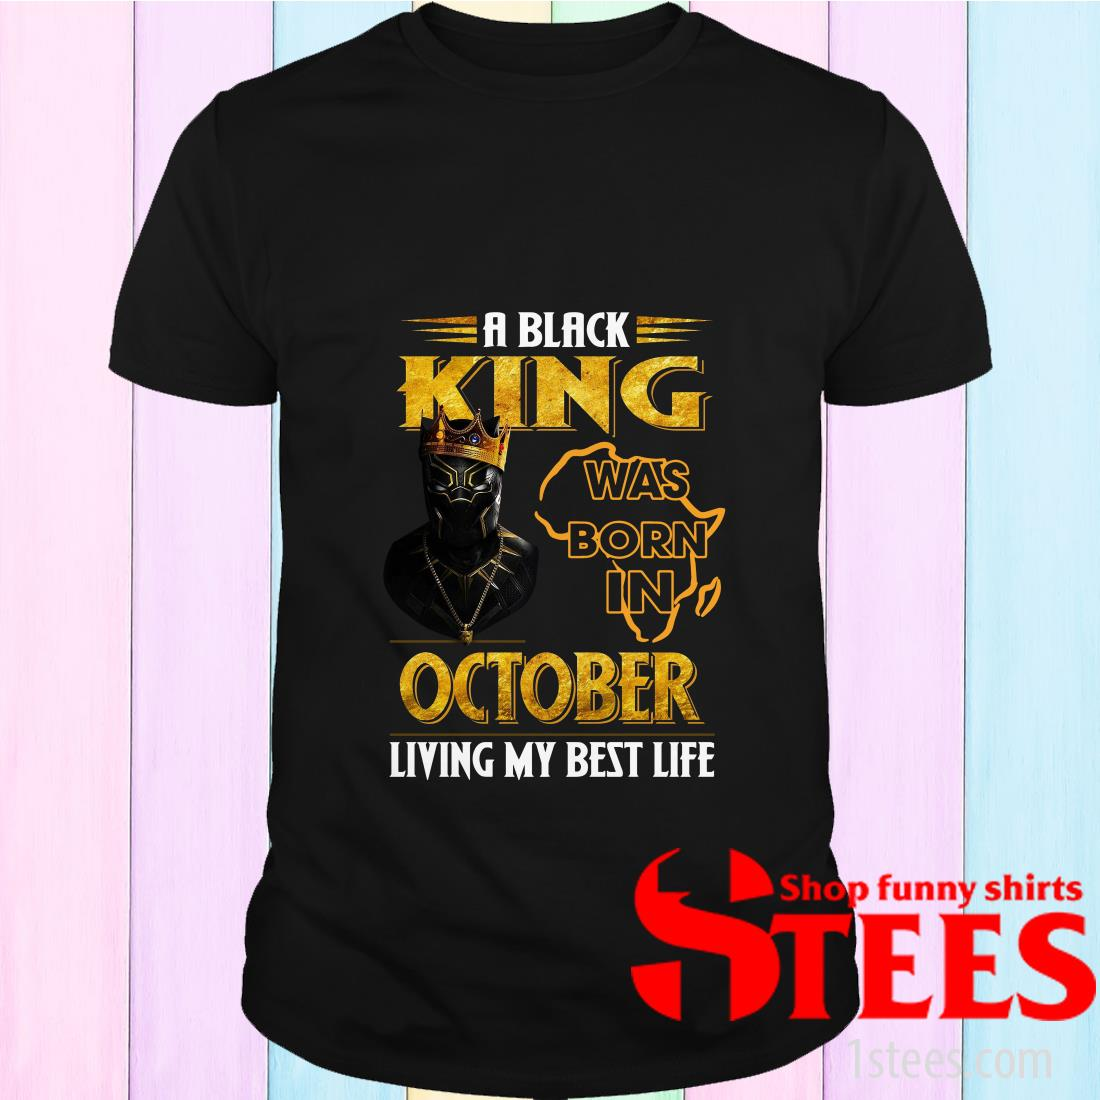 RIP Black Panther King Was Born In October Living My Best Life 1977 2020 T-Shirt